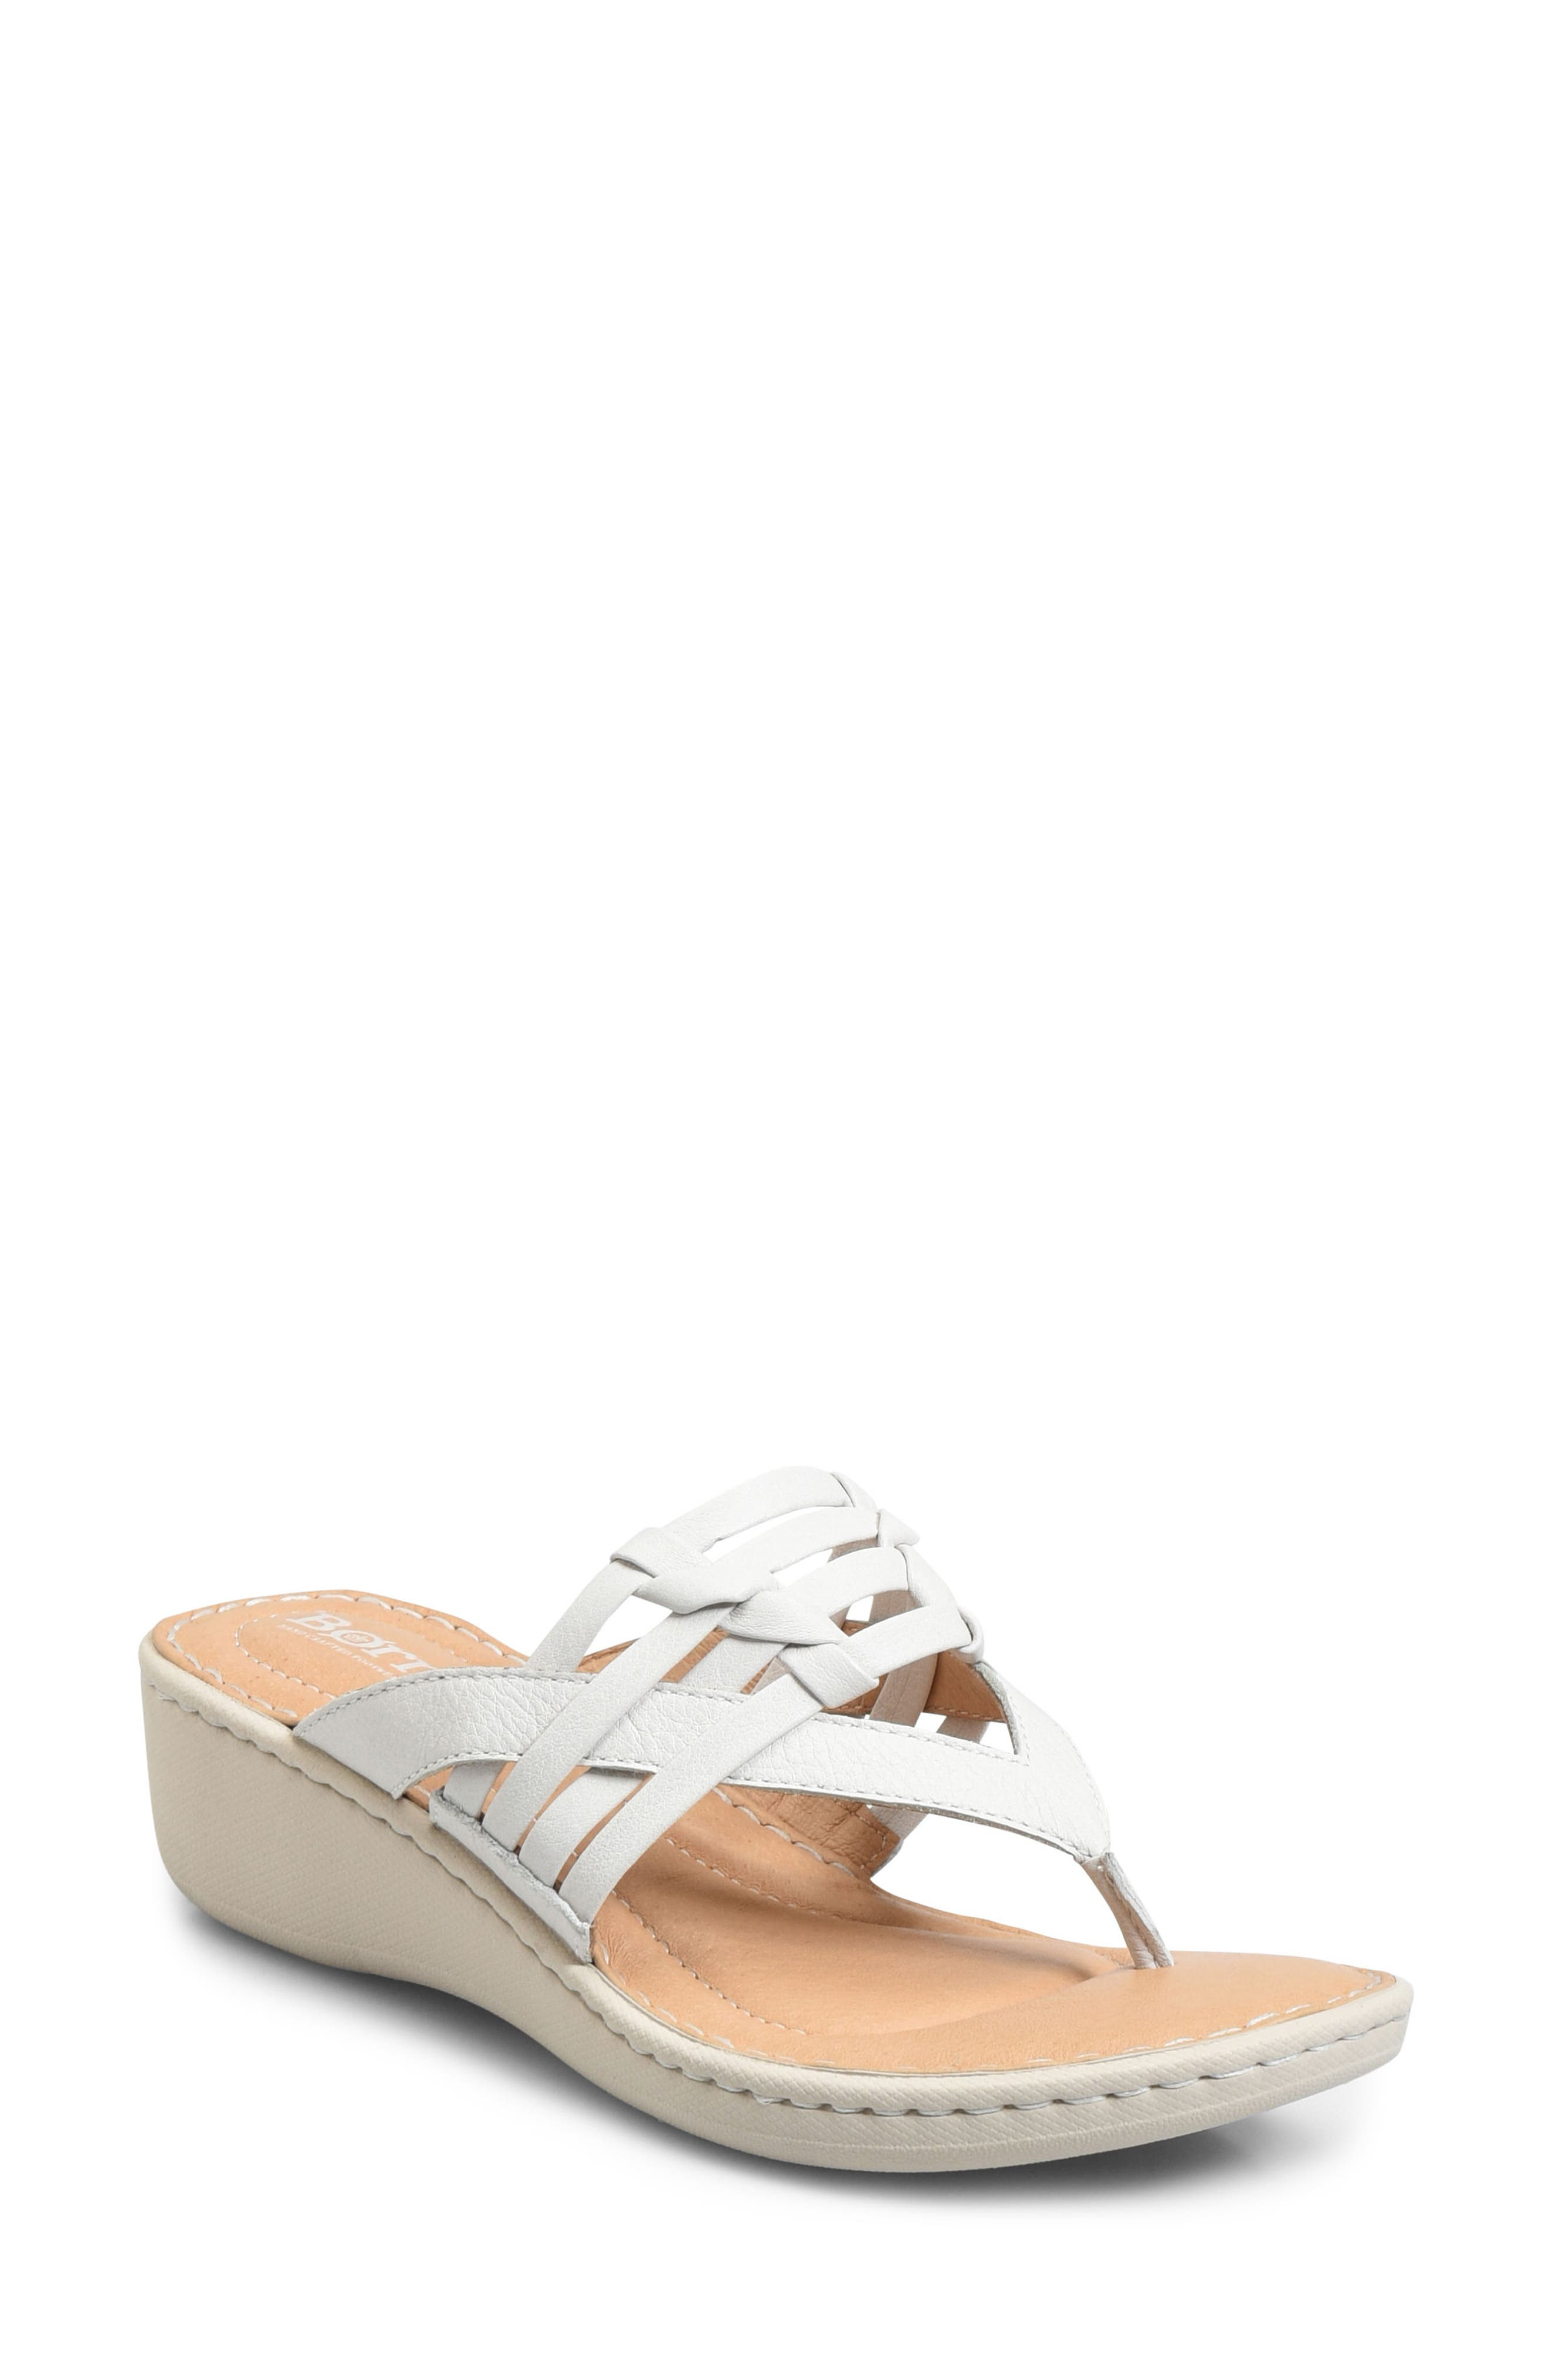 Tansey Wedge Sandal,                         Main,                         color,